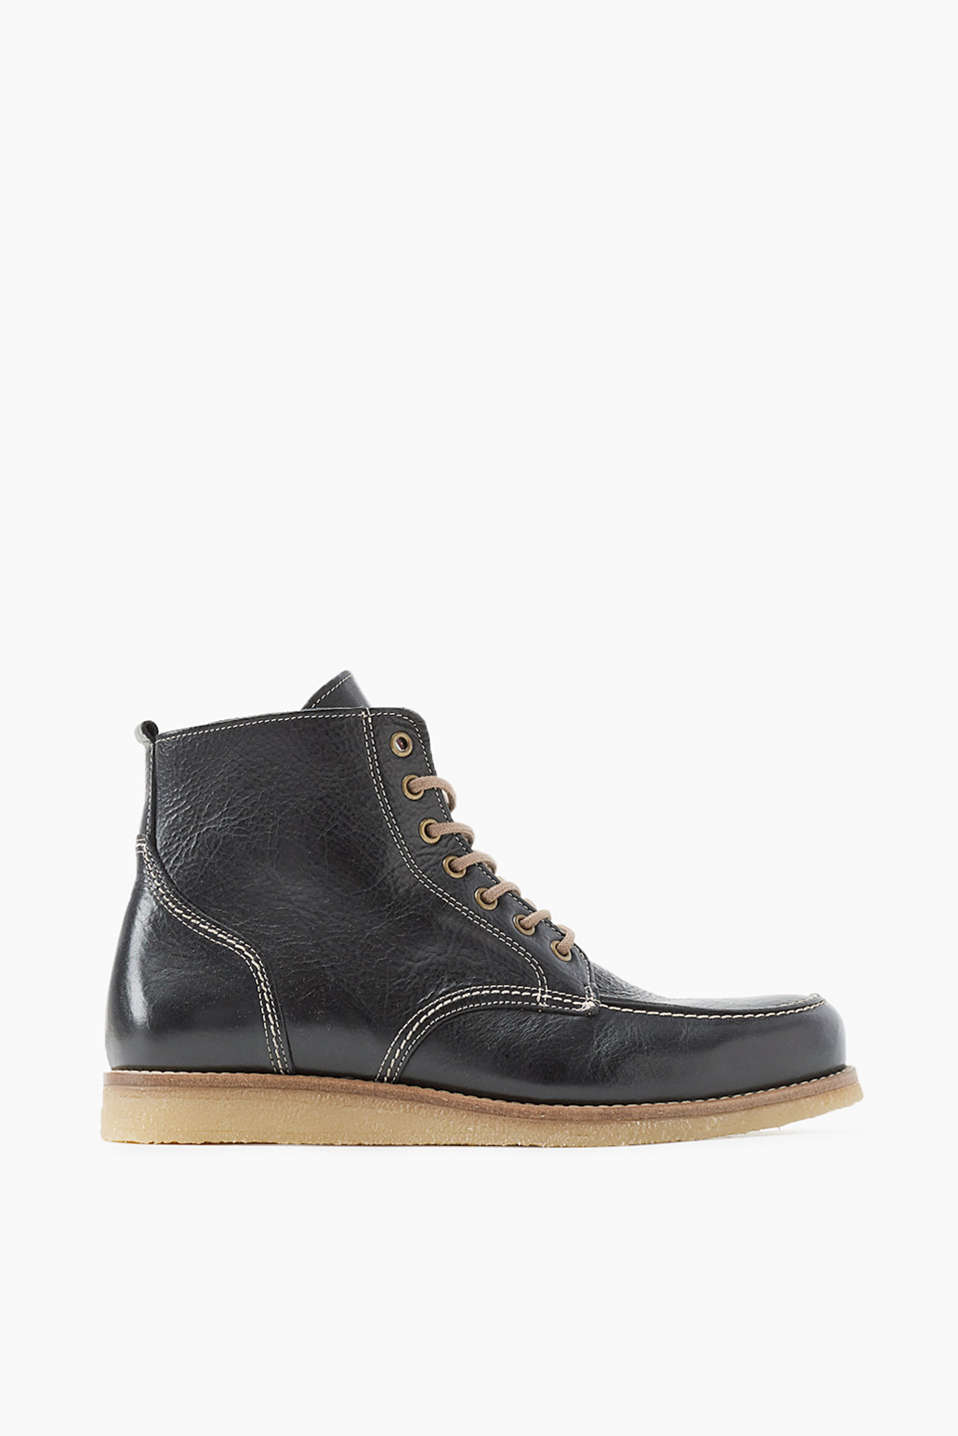 The casual, worker-style design with a crepe sole makes these boots a favourite for between the seasons